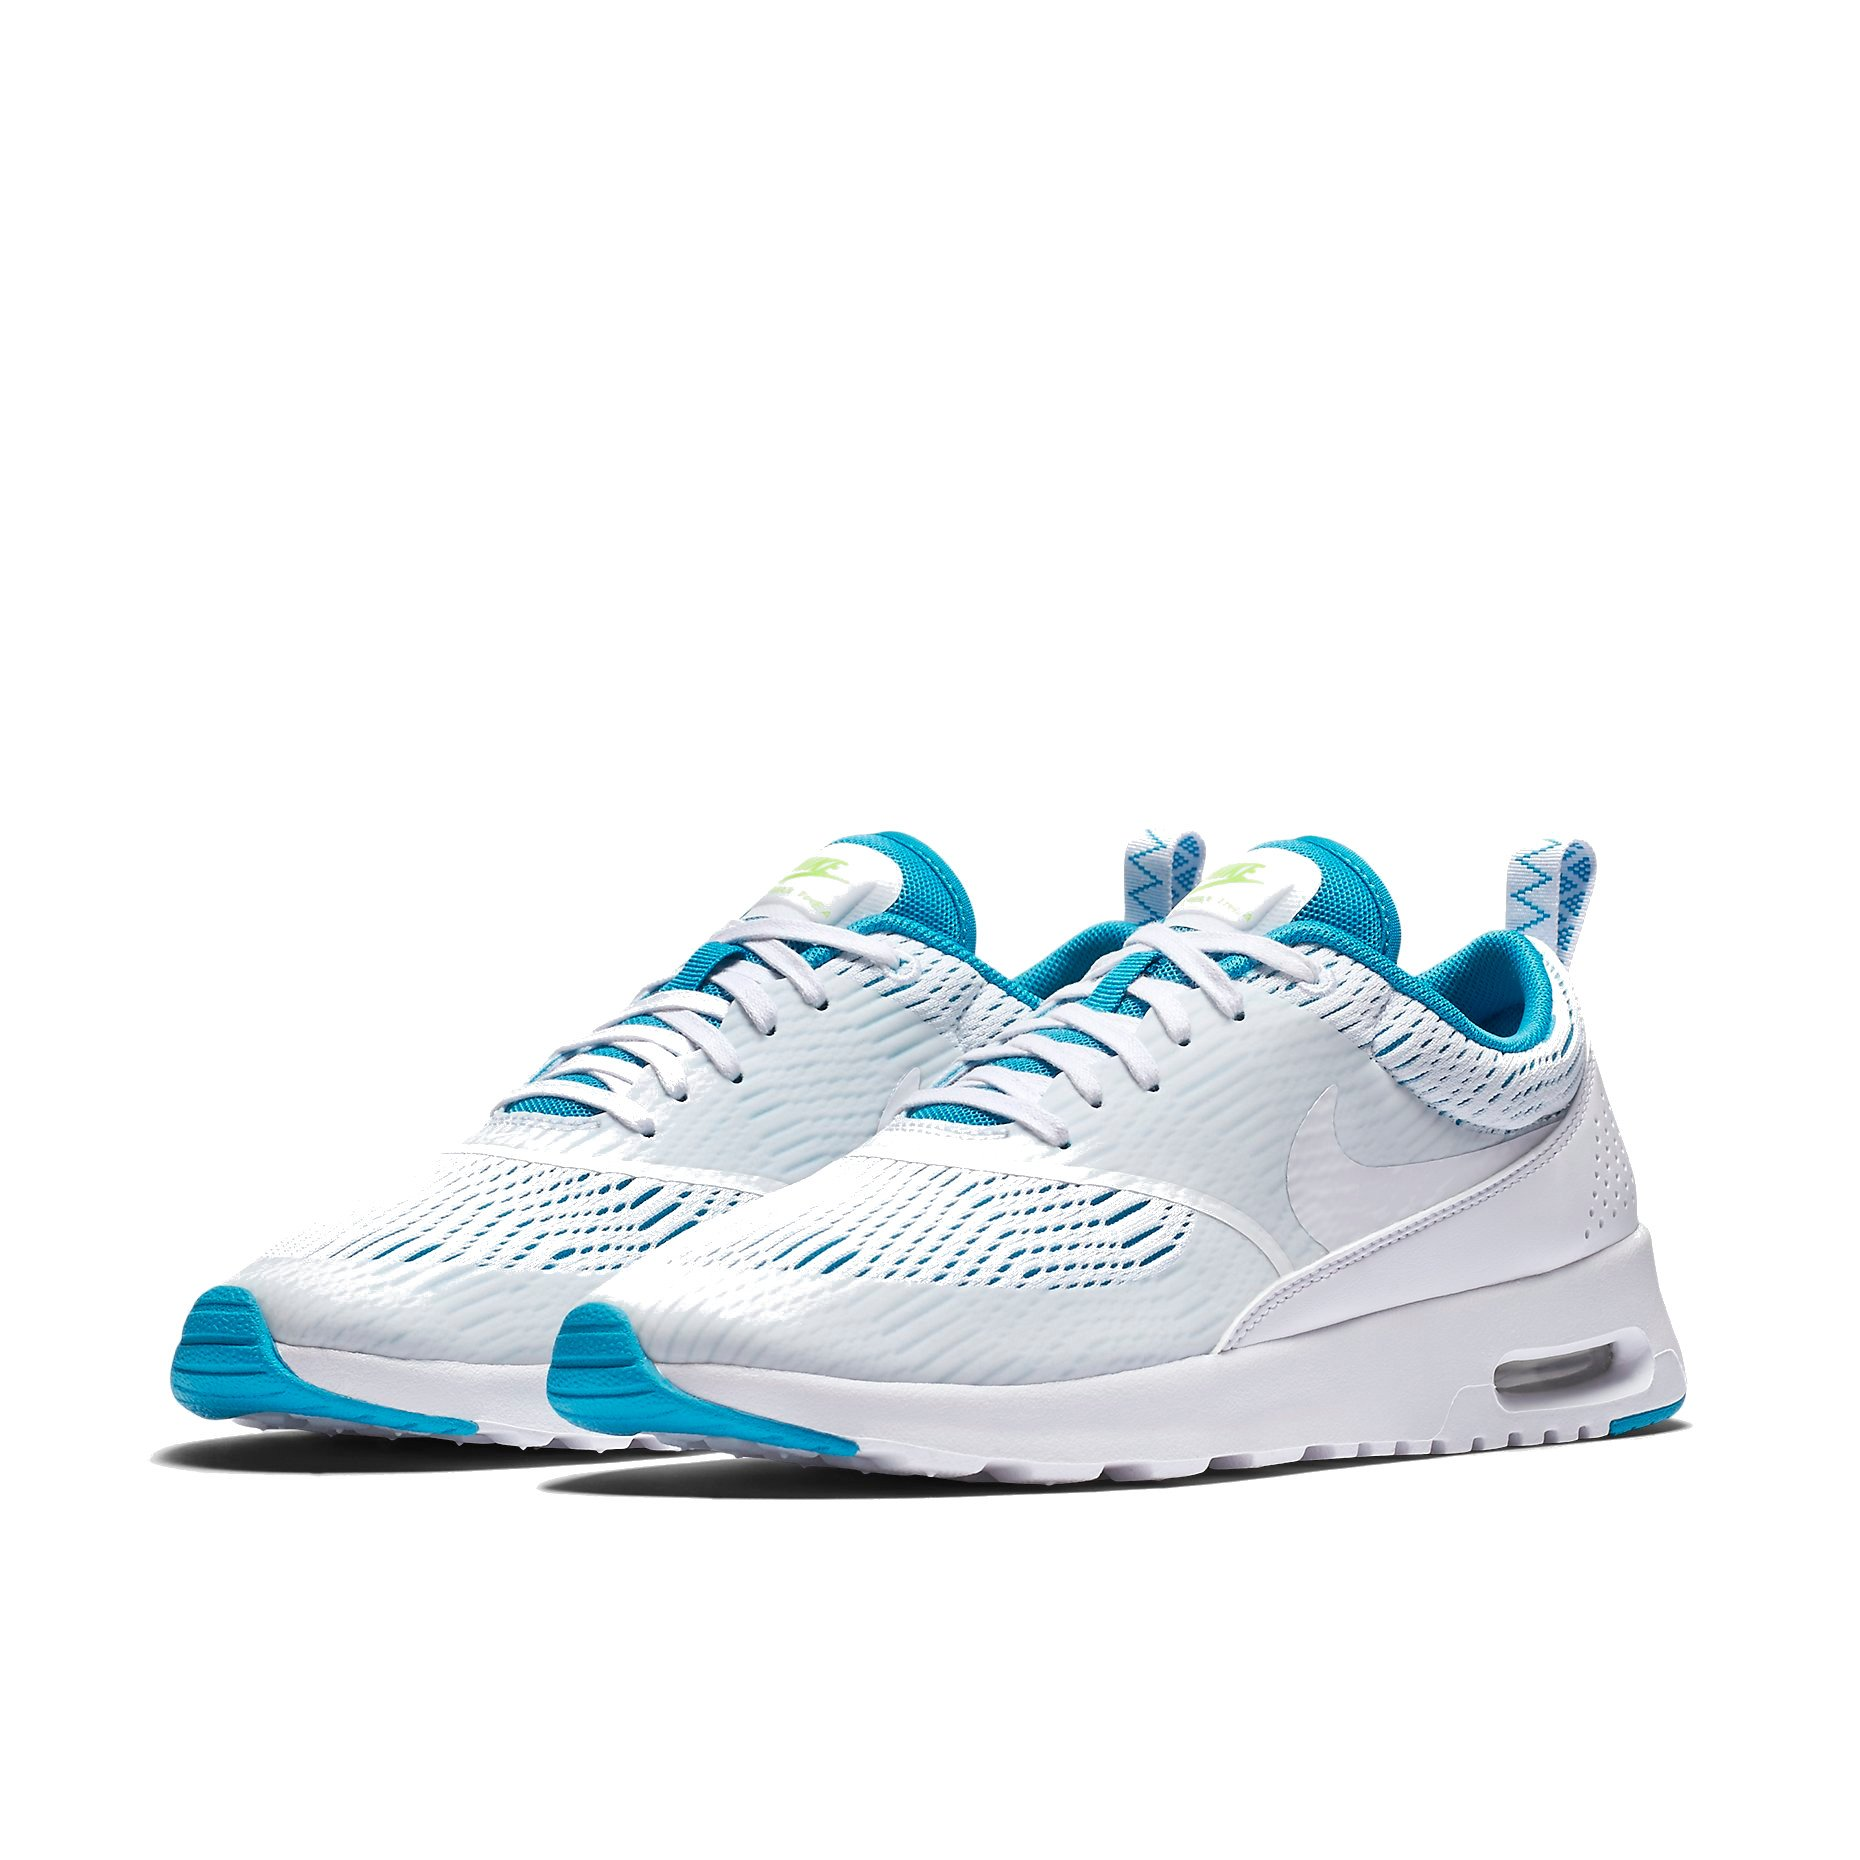 Nike Women's Air Max Thea EM White/White-Blue Lagoon-Ghost Green (12M US)